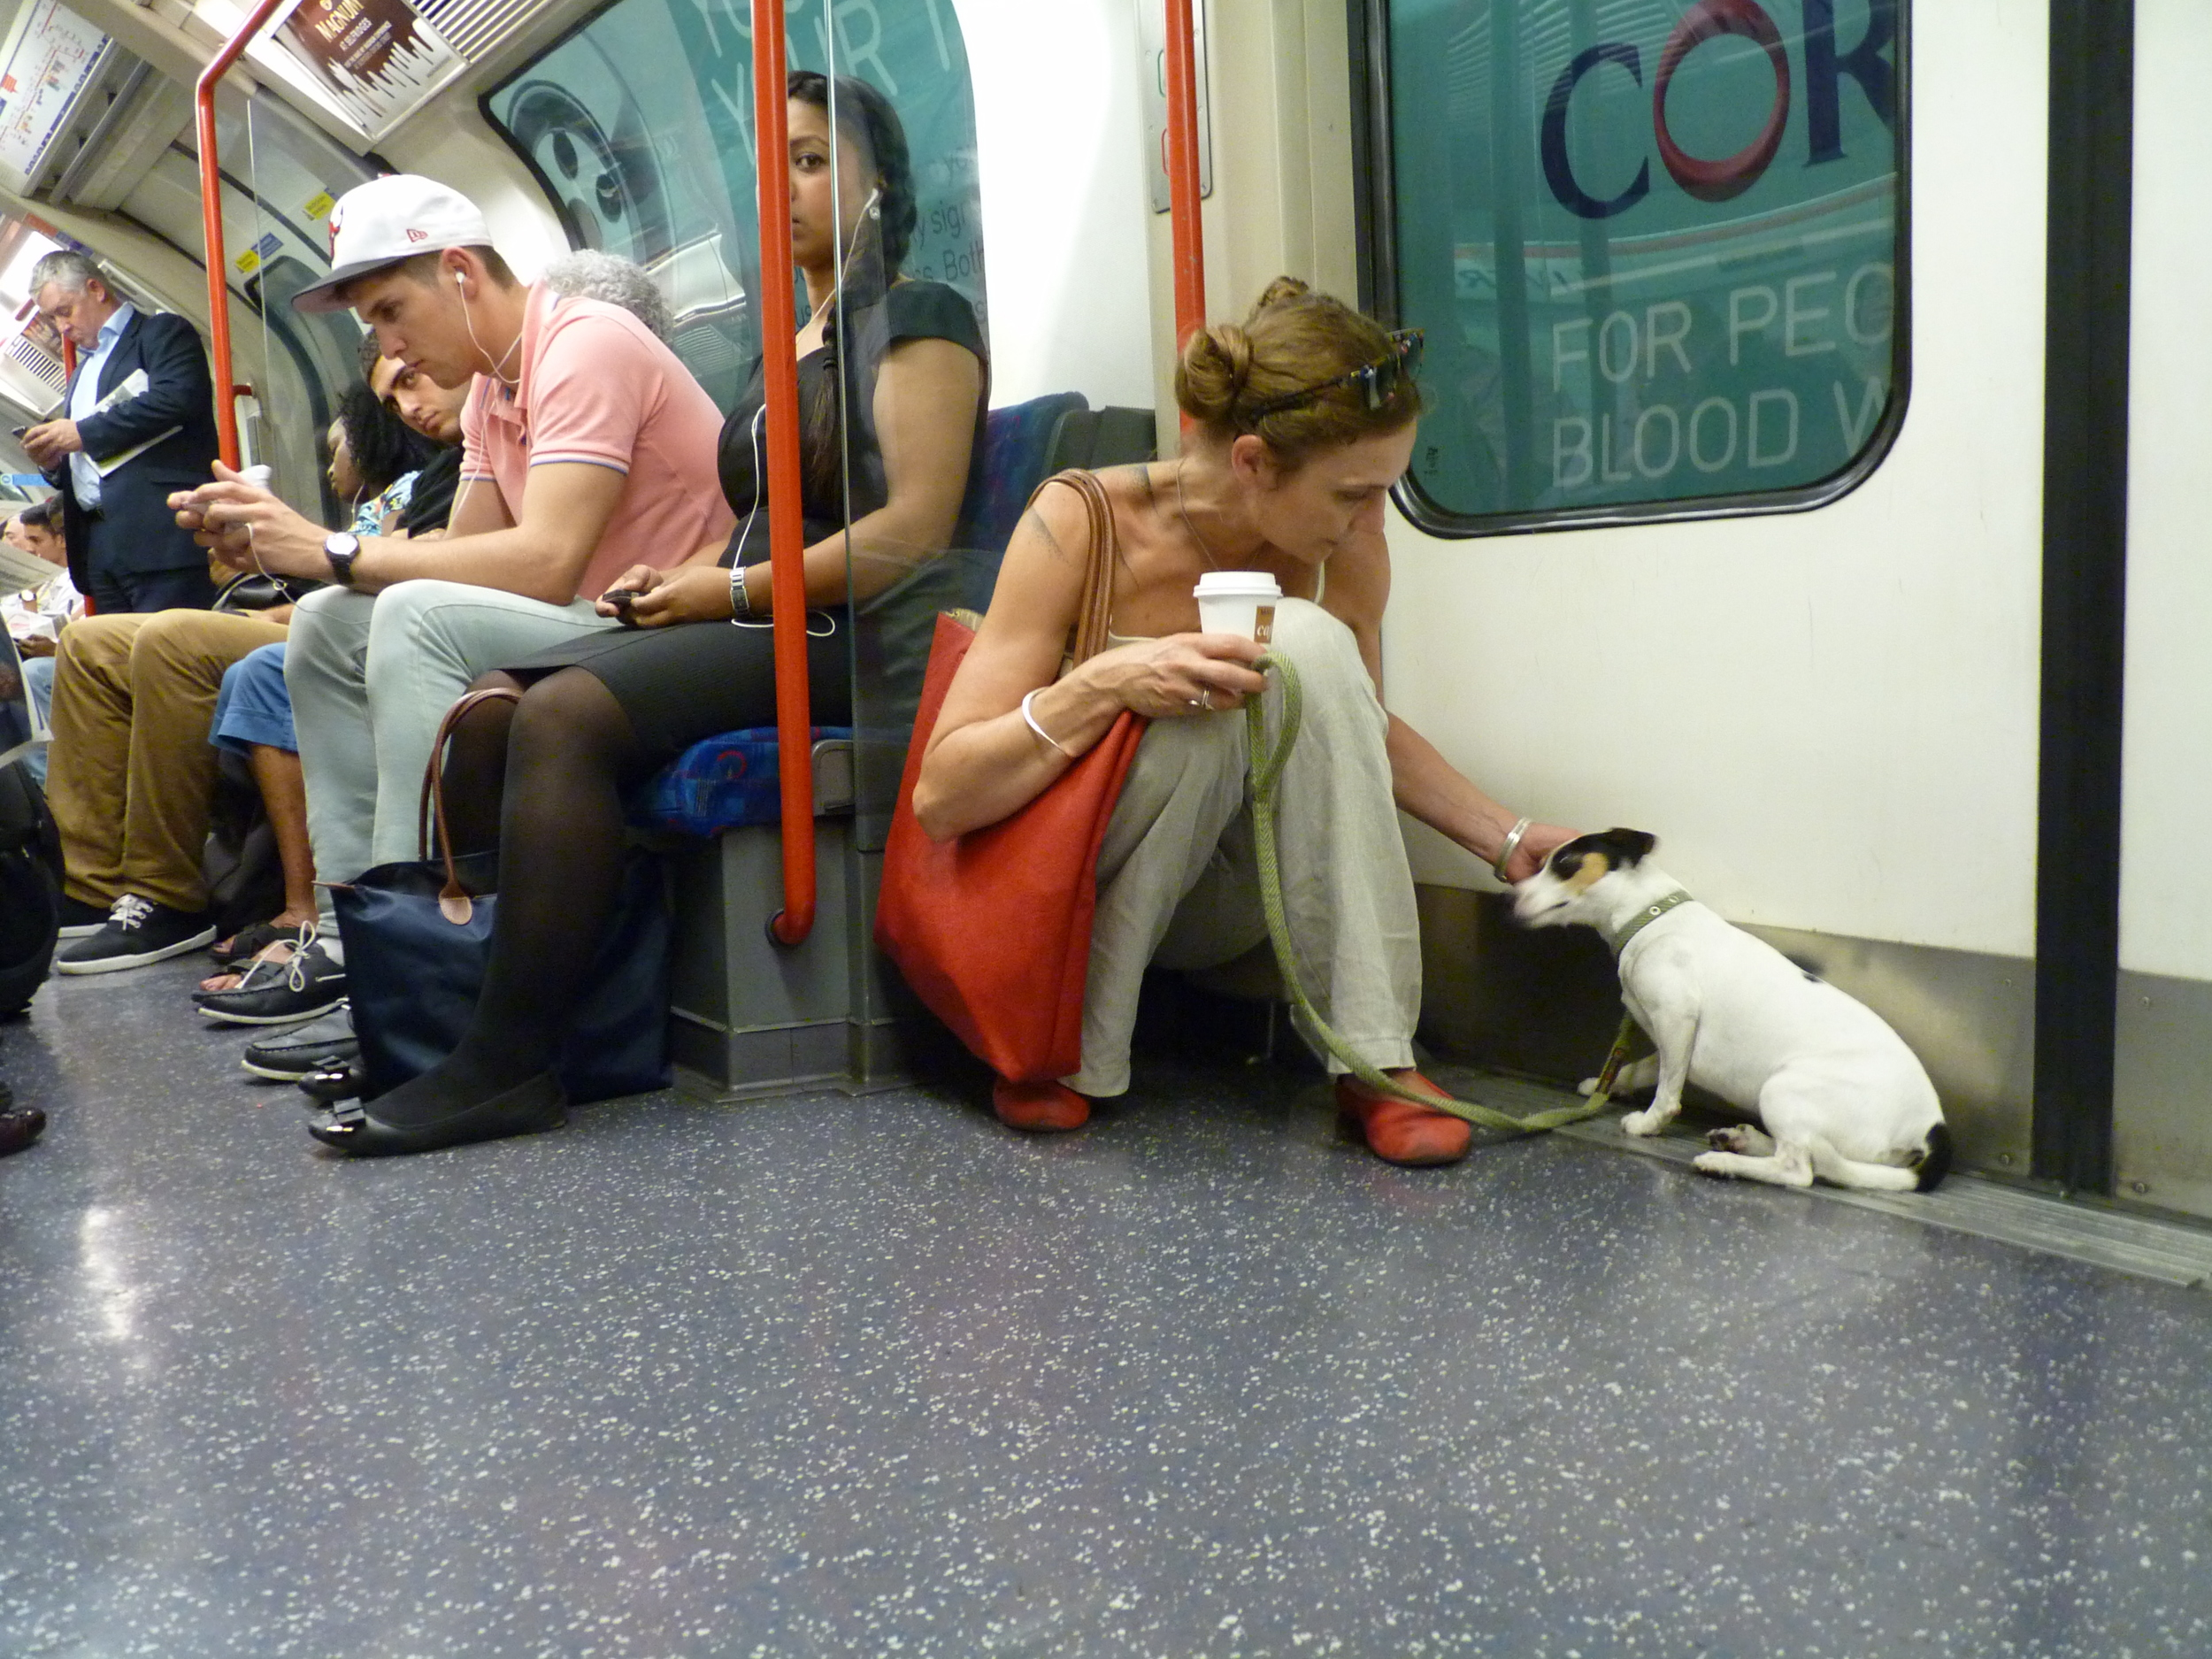 I like the Tube when it's not too hot, not too crowded and when Olive Mommy gives me scritchees.